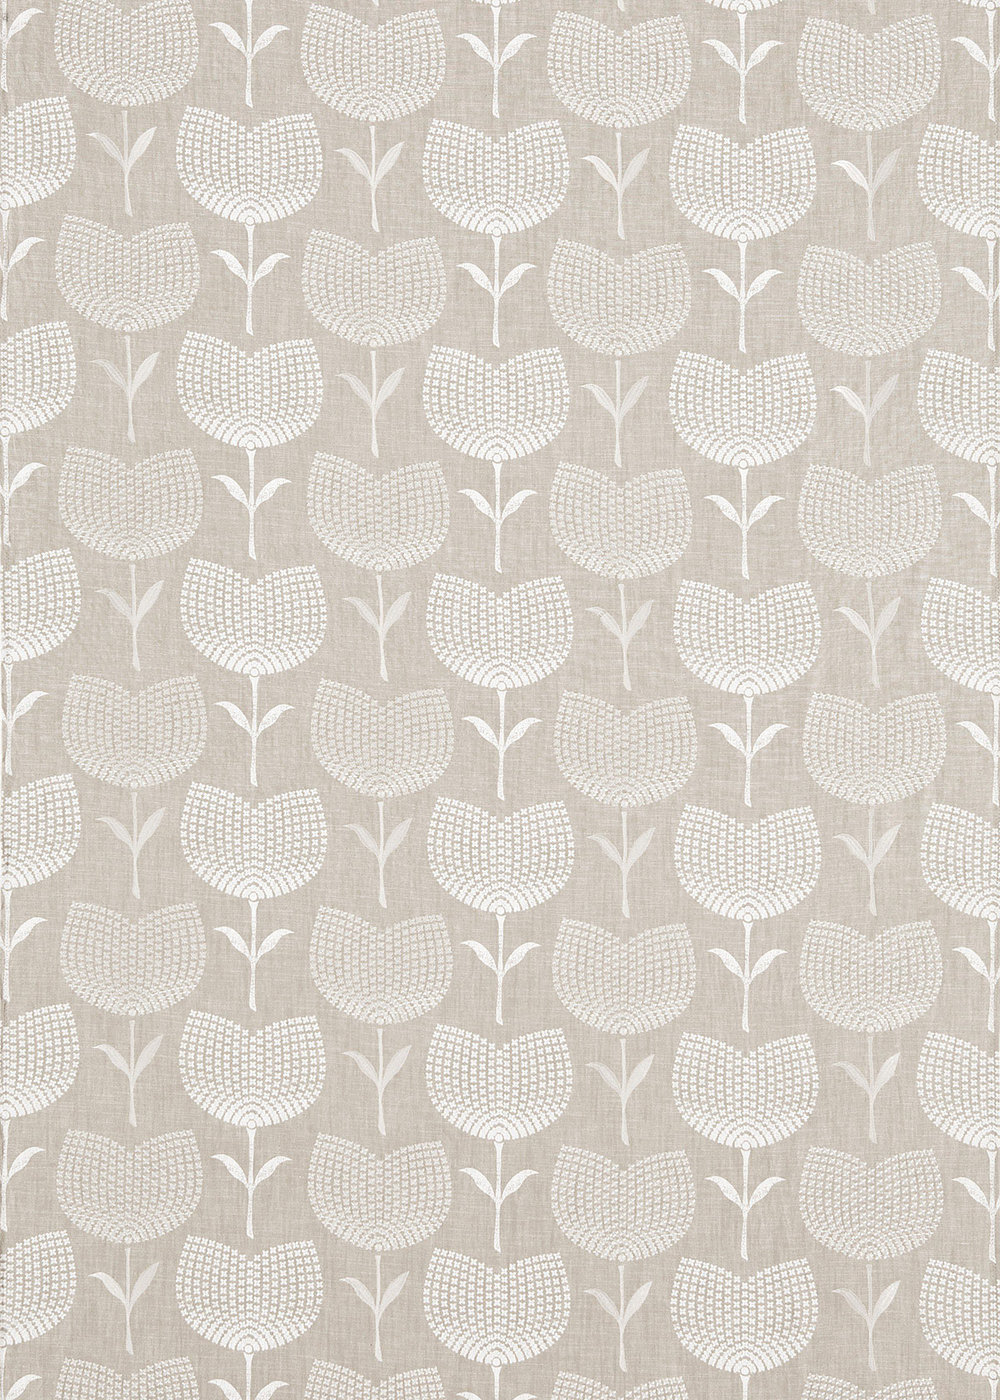 Harlequin Lolita  Heather/ Chalk Fabric - Product code: 131073